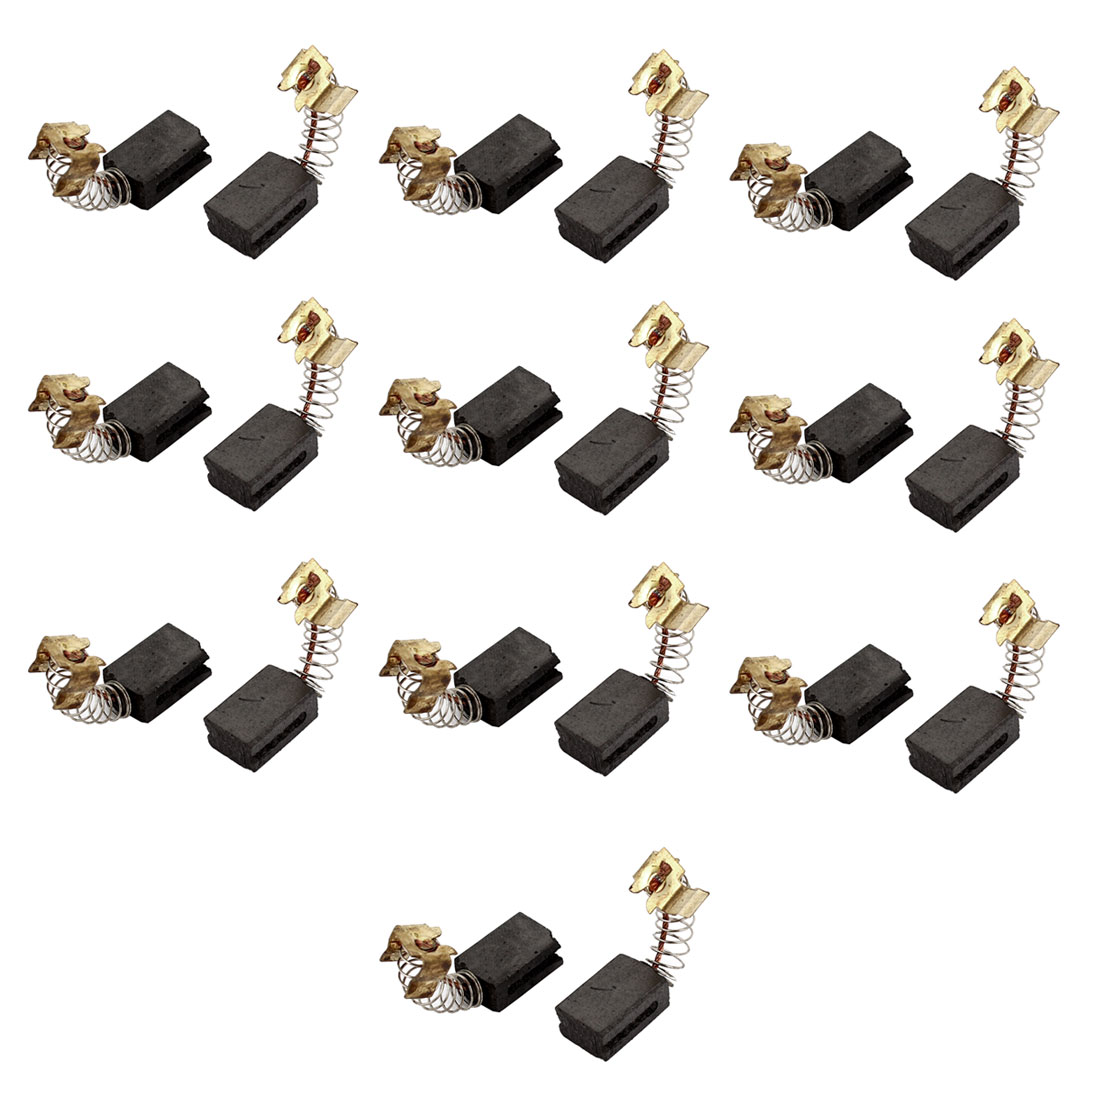 Unique Bargains 20 Pcs 13mm x 9mm x 6mm Power Tool Carbon Brushes for Angle Grinder